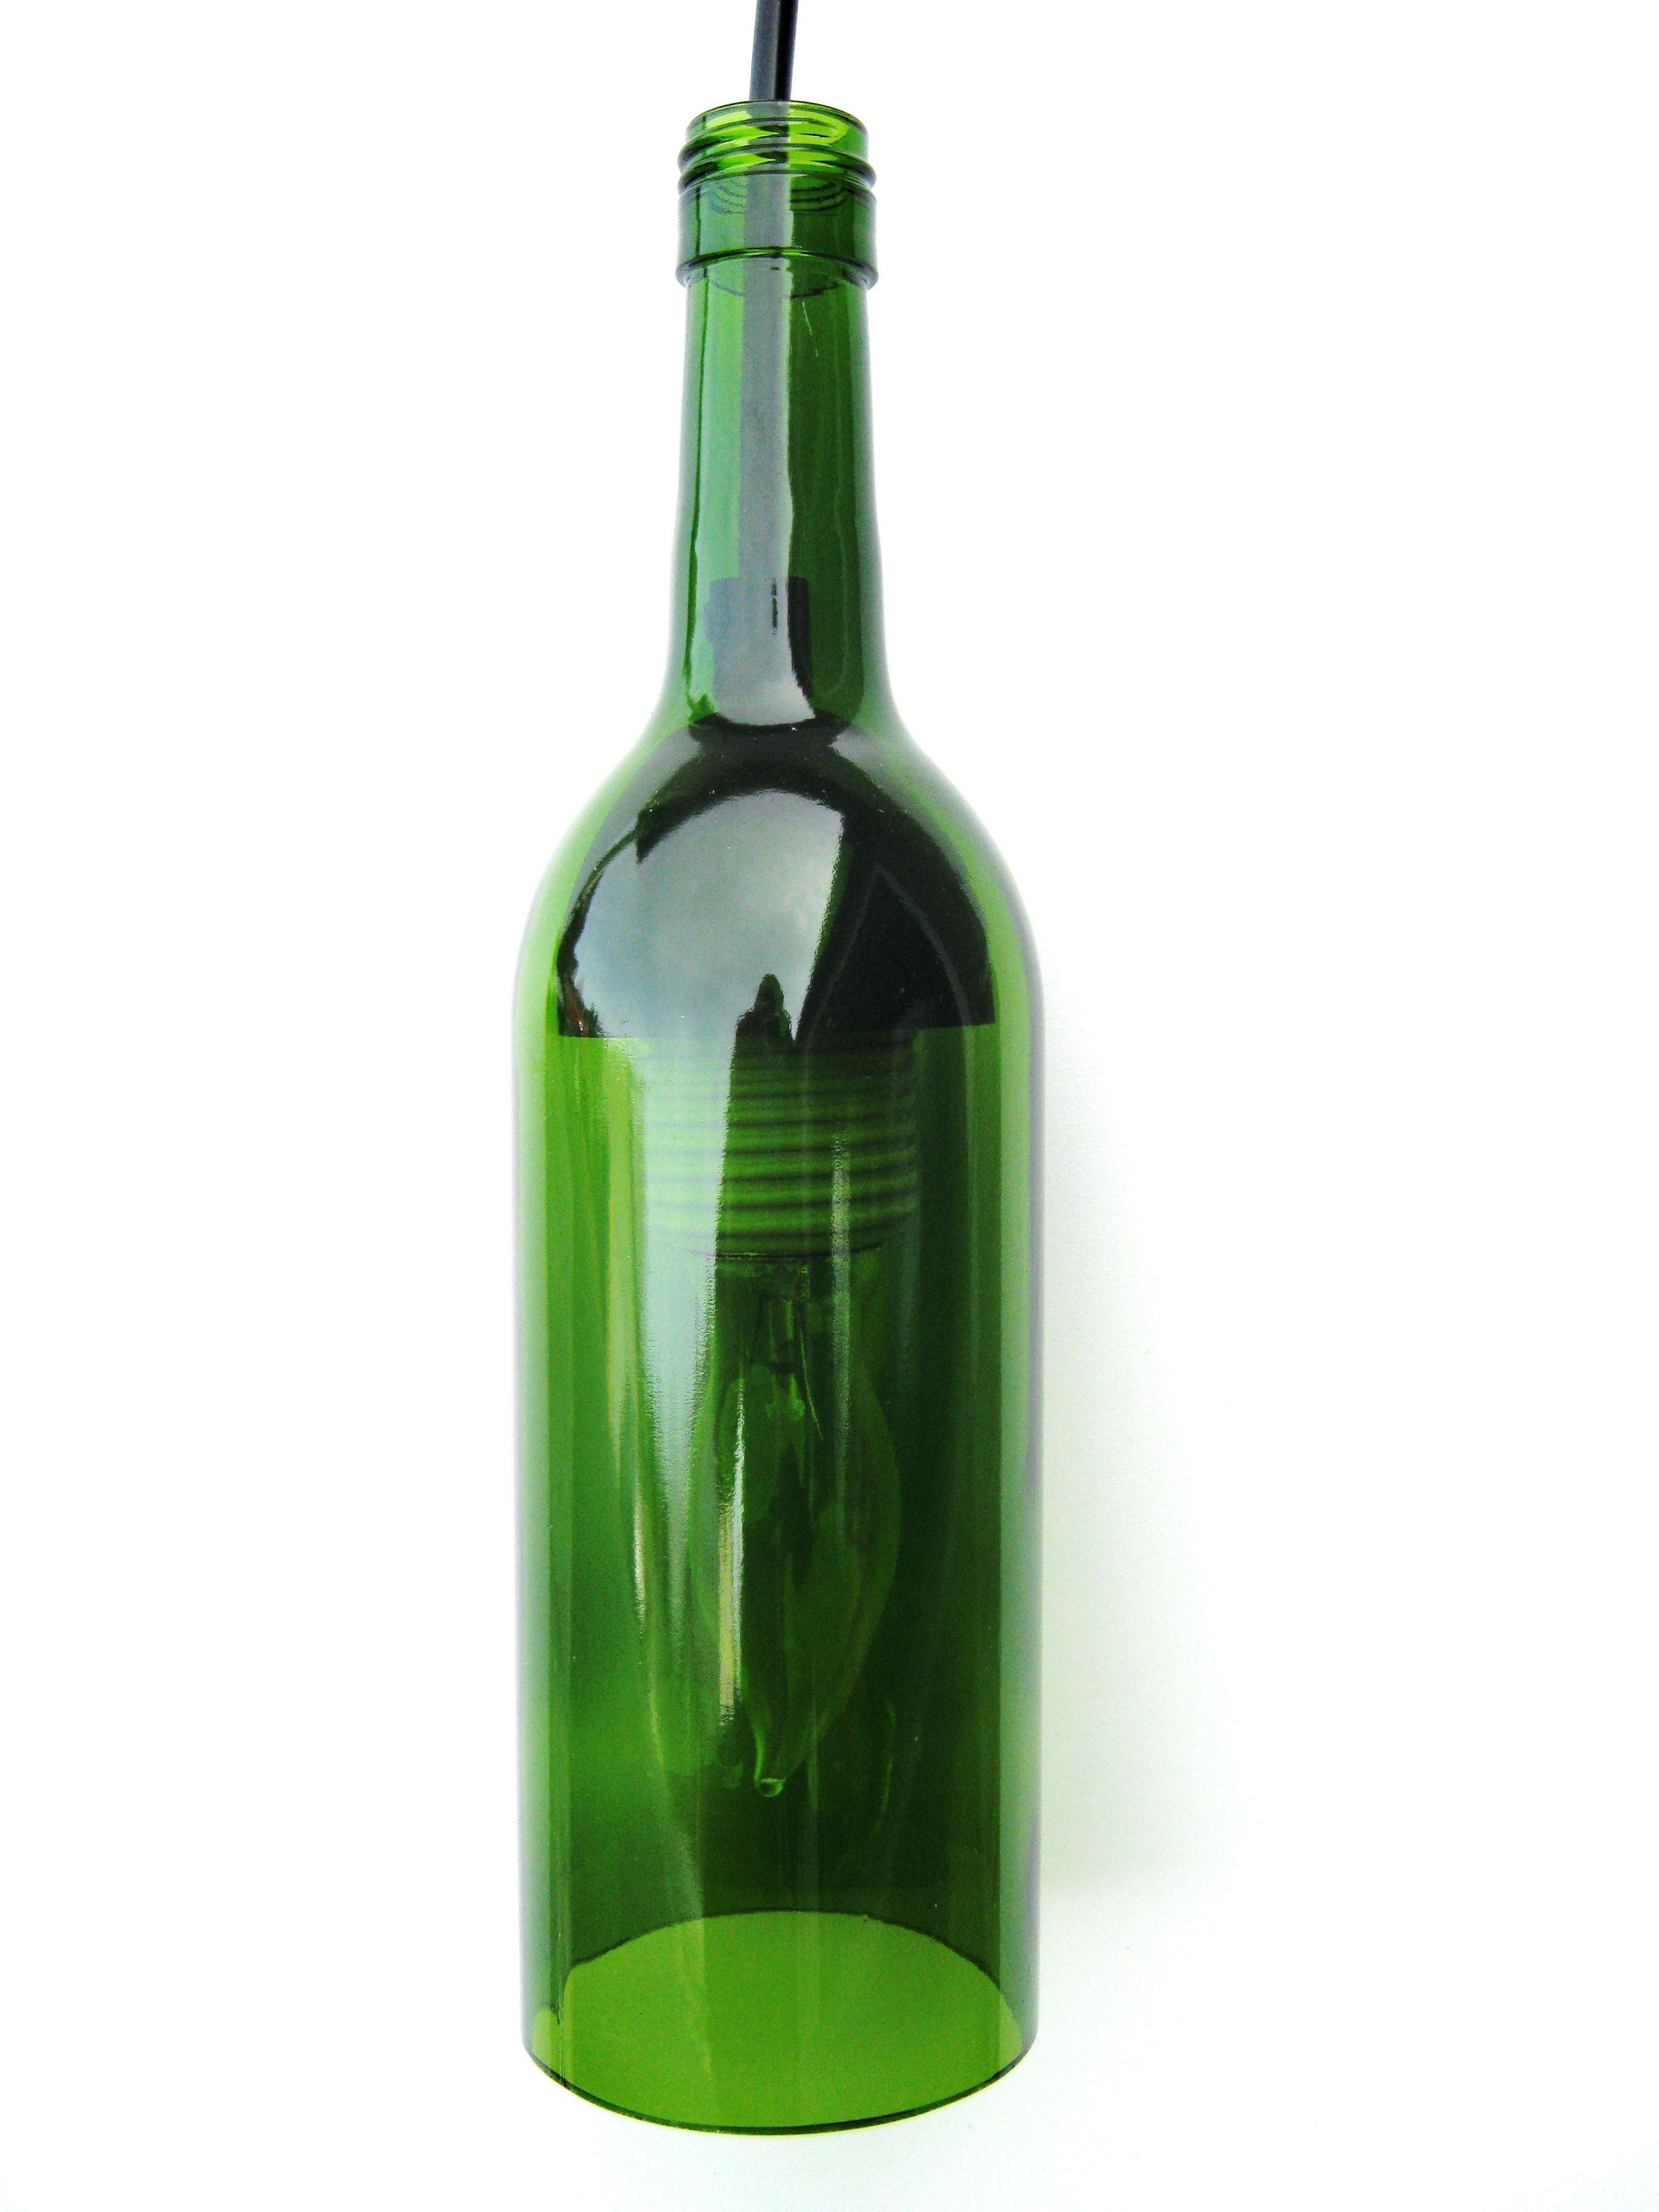 Walla Walla Wine Bottle Pendant Light Boiled Down Money Goo